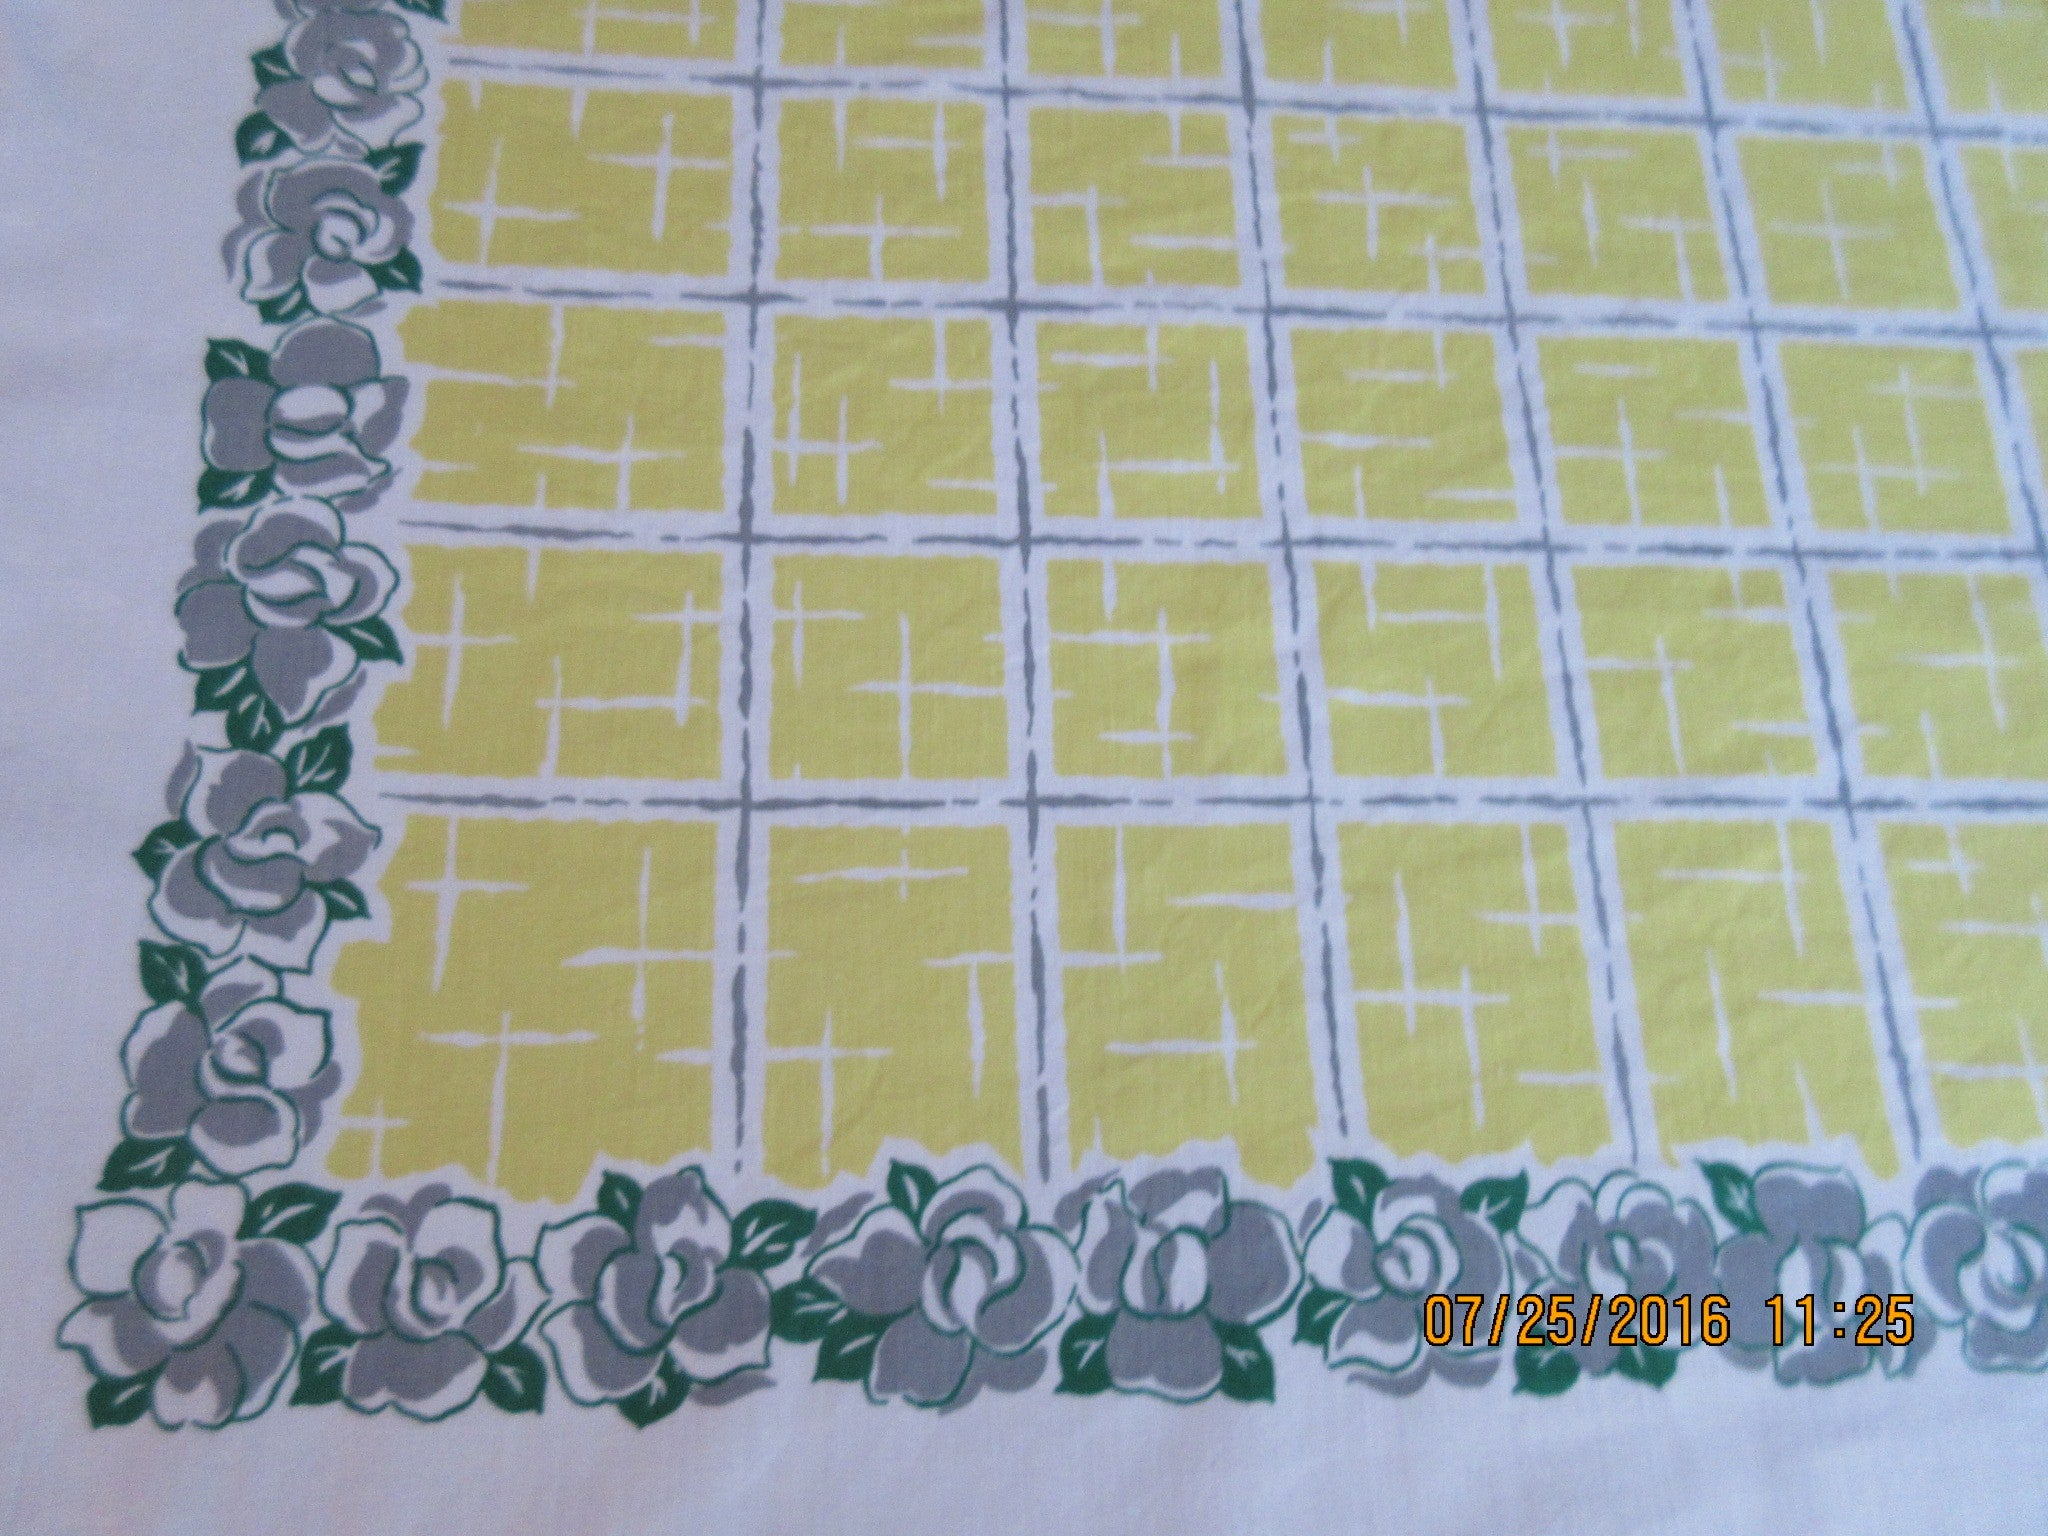 Gray Green Begonias on Yellow Plaid Floral Vintage Printed Tablecloth (52 X 49)